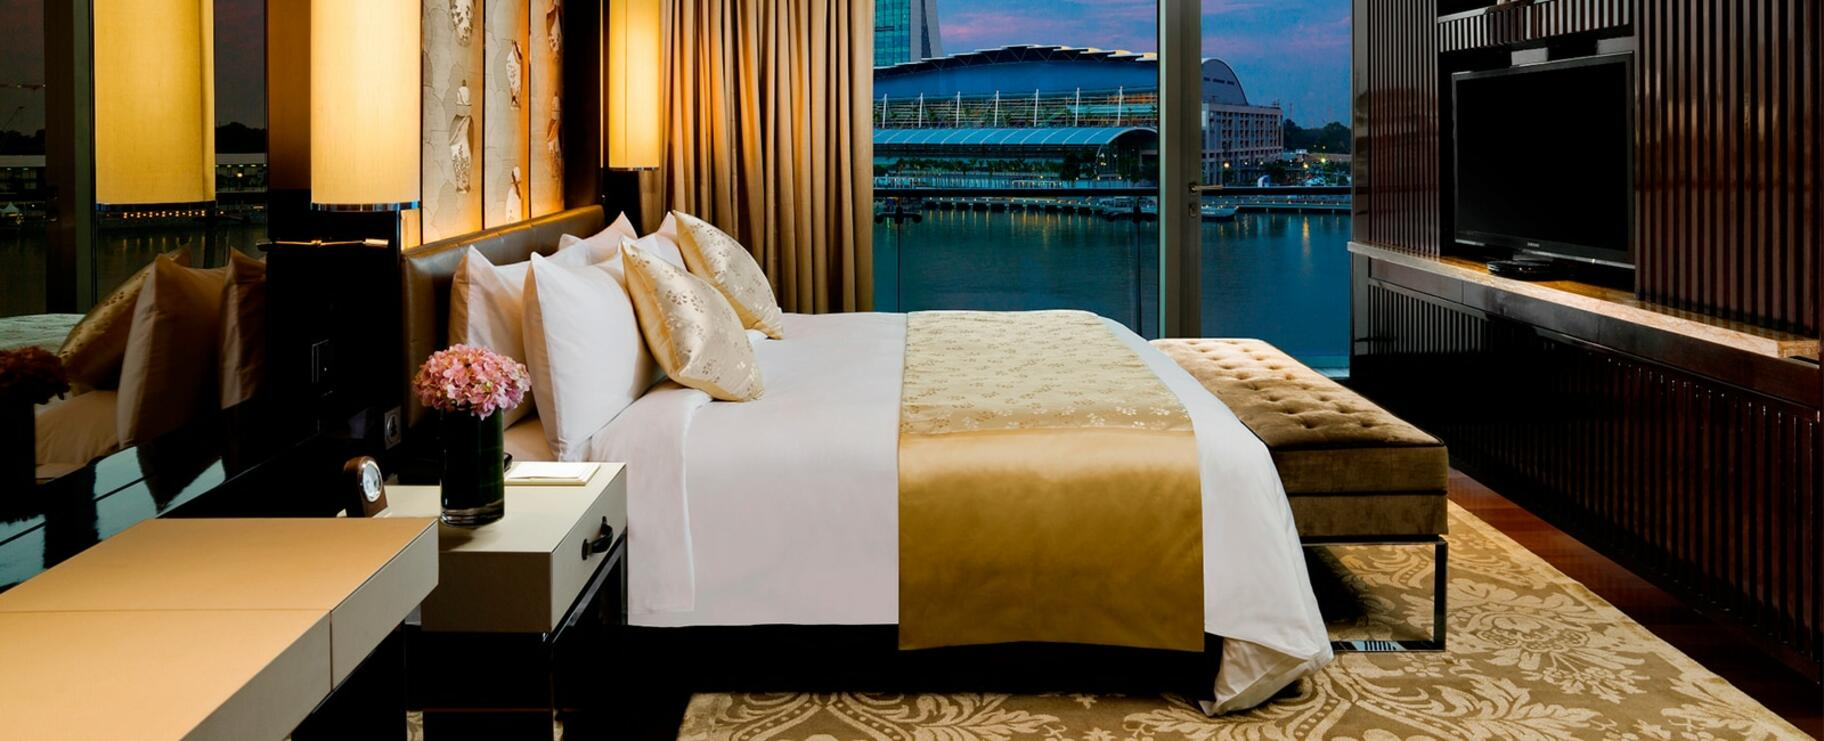 A room with one king bed and a night city view